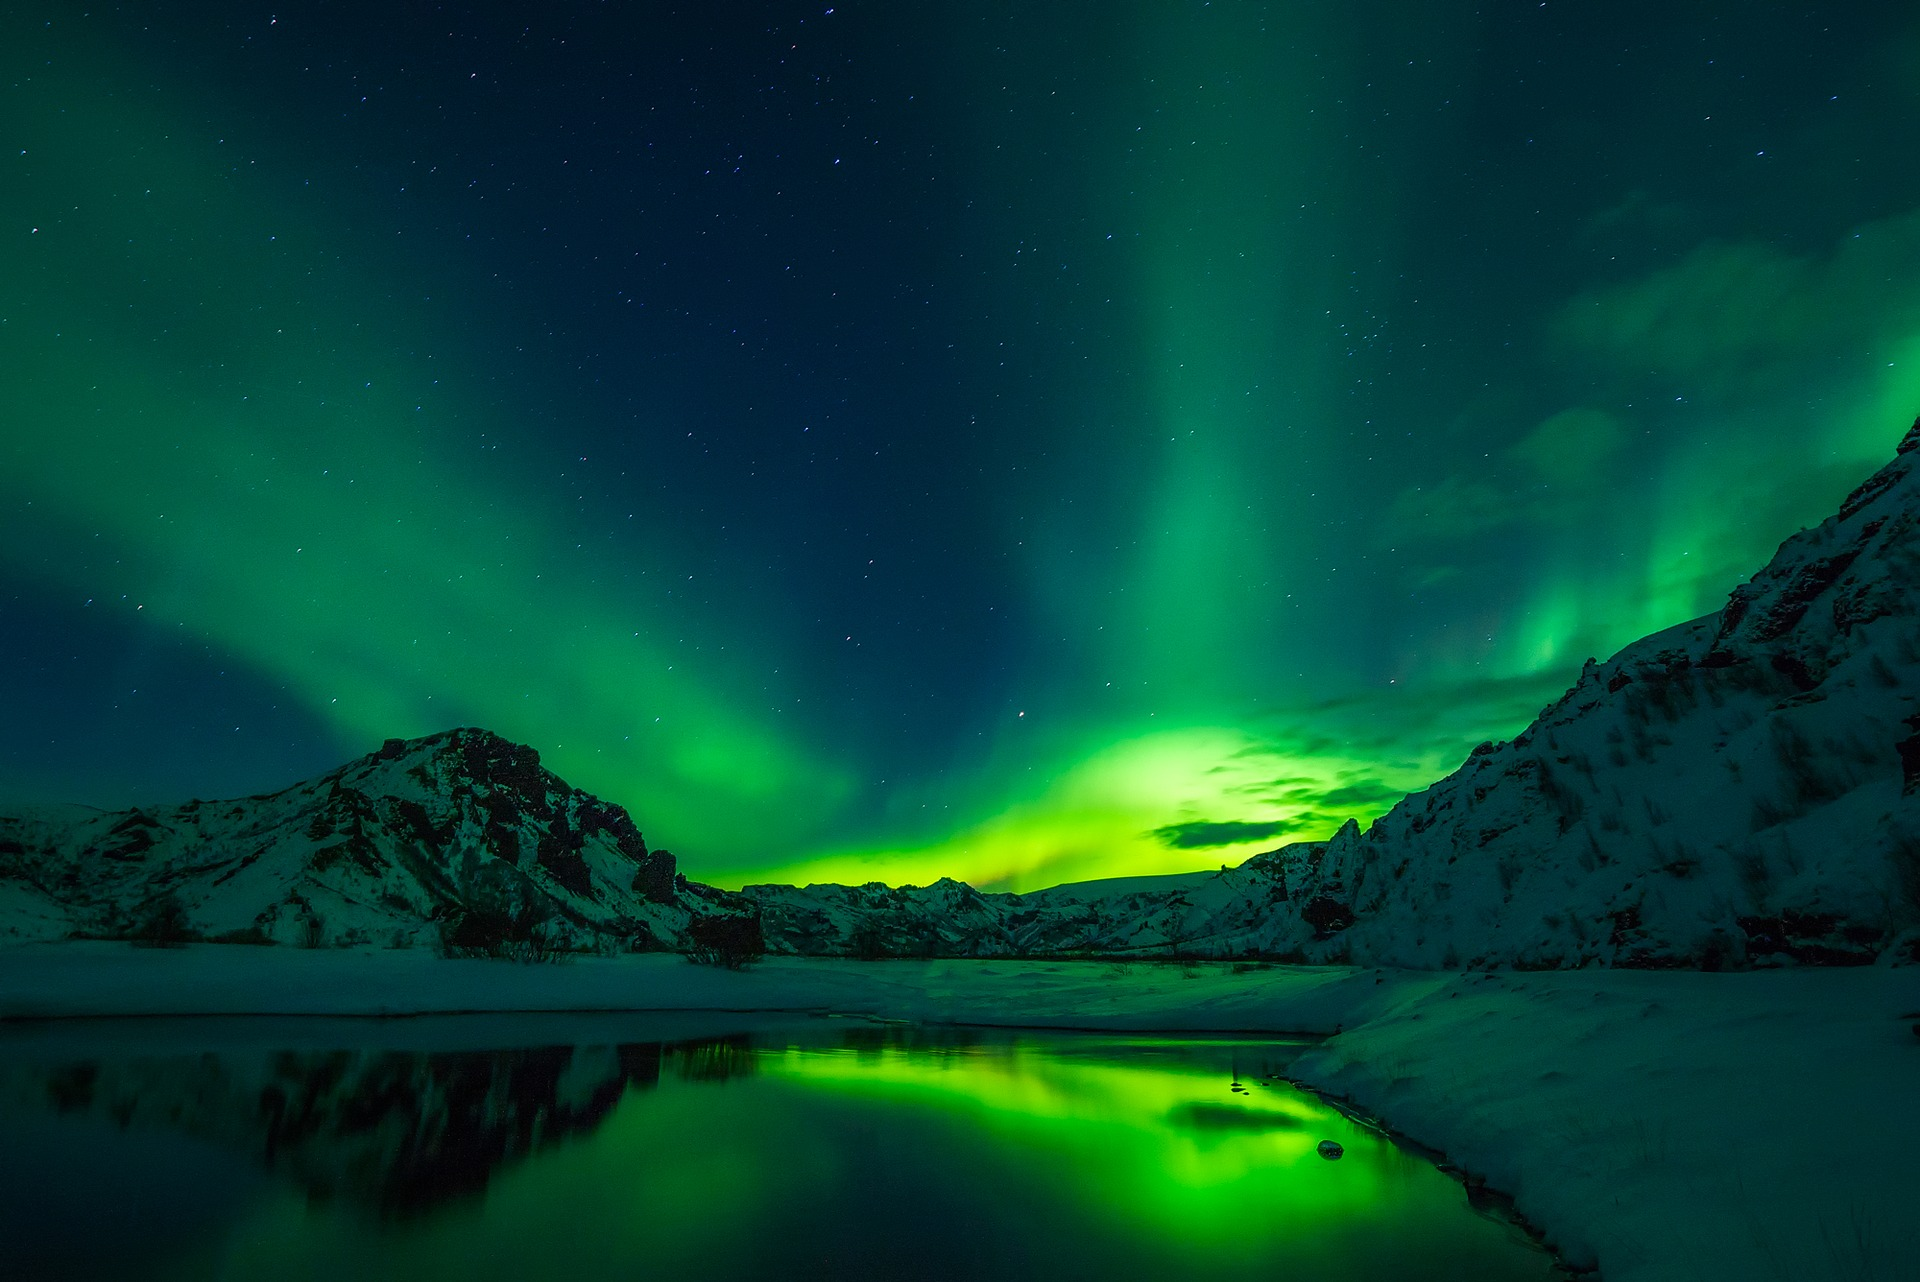 green northern lights above mountains and a lake in iceland